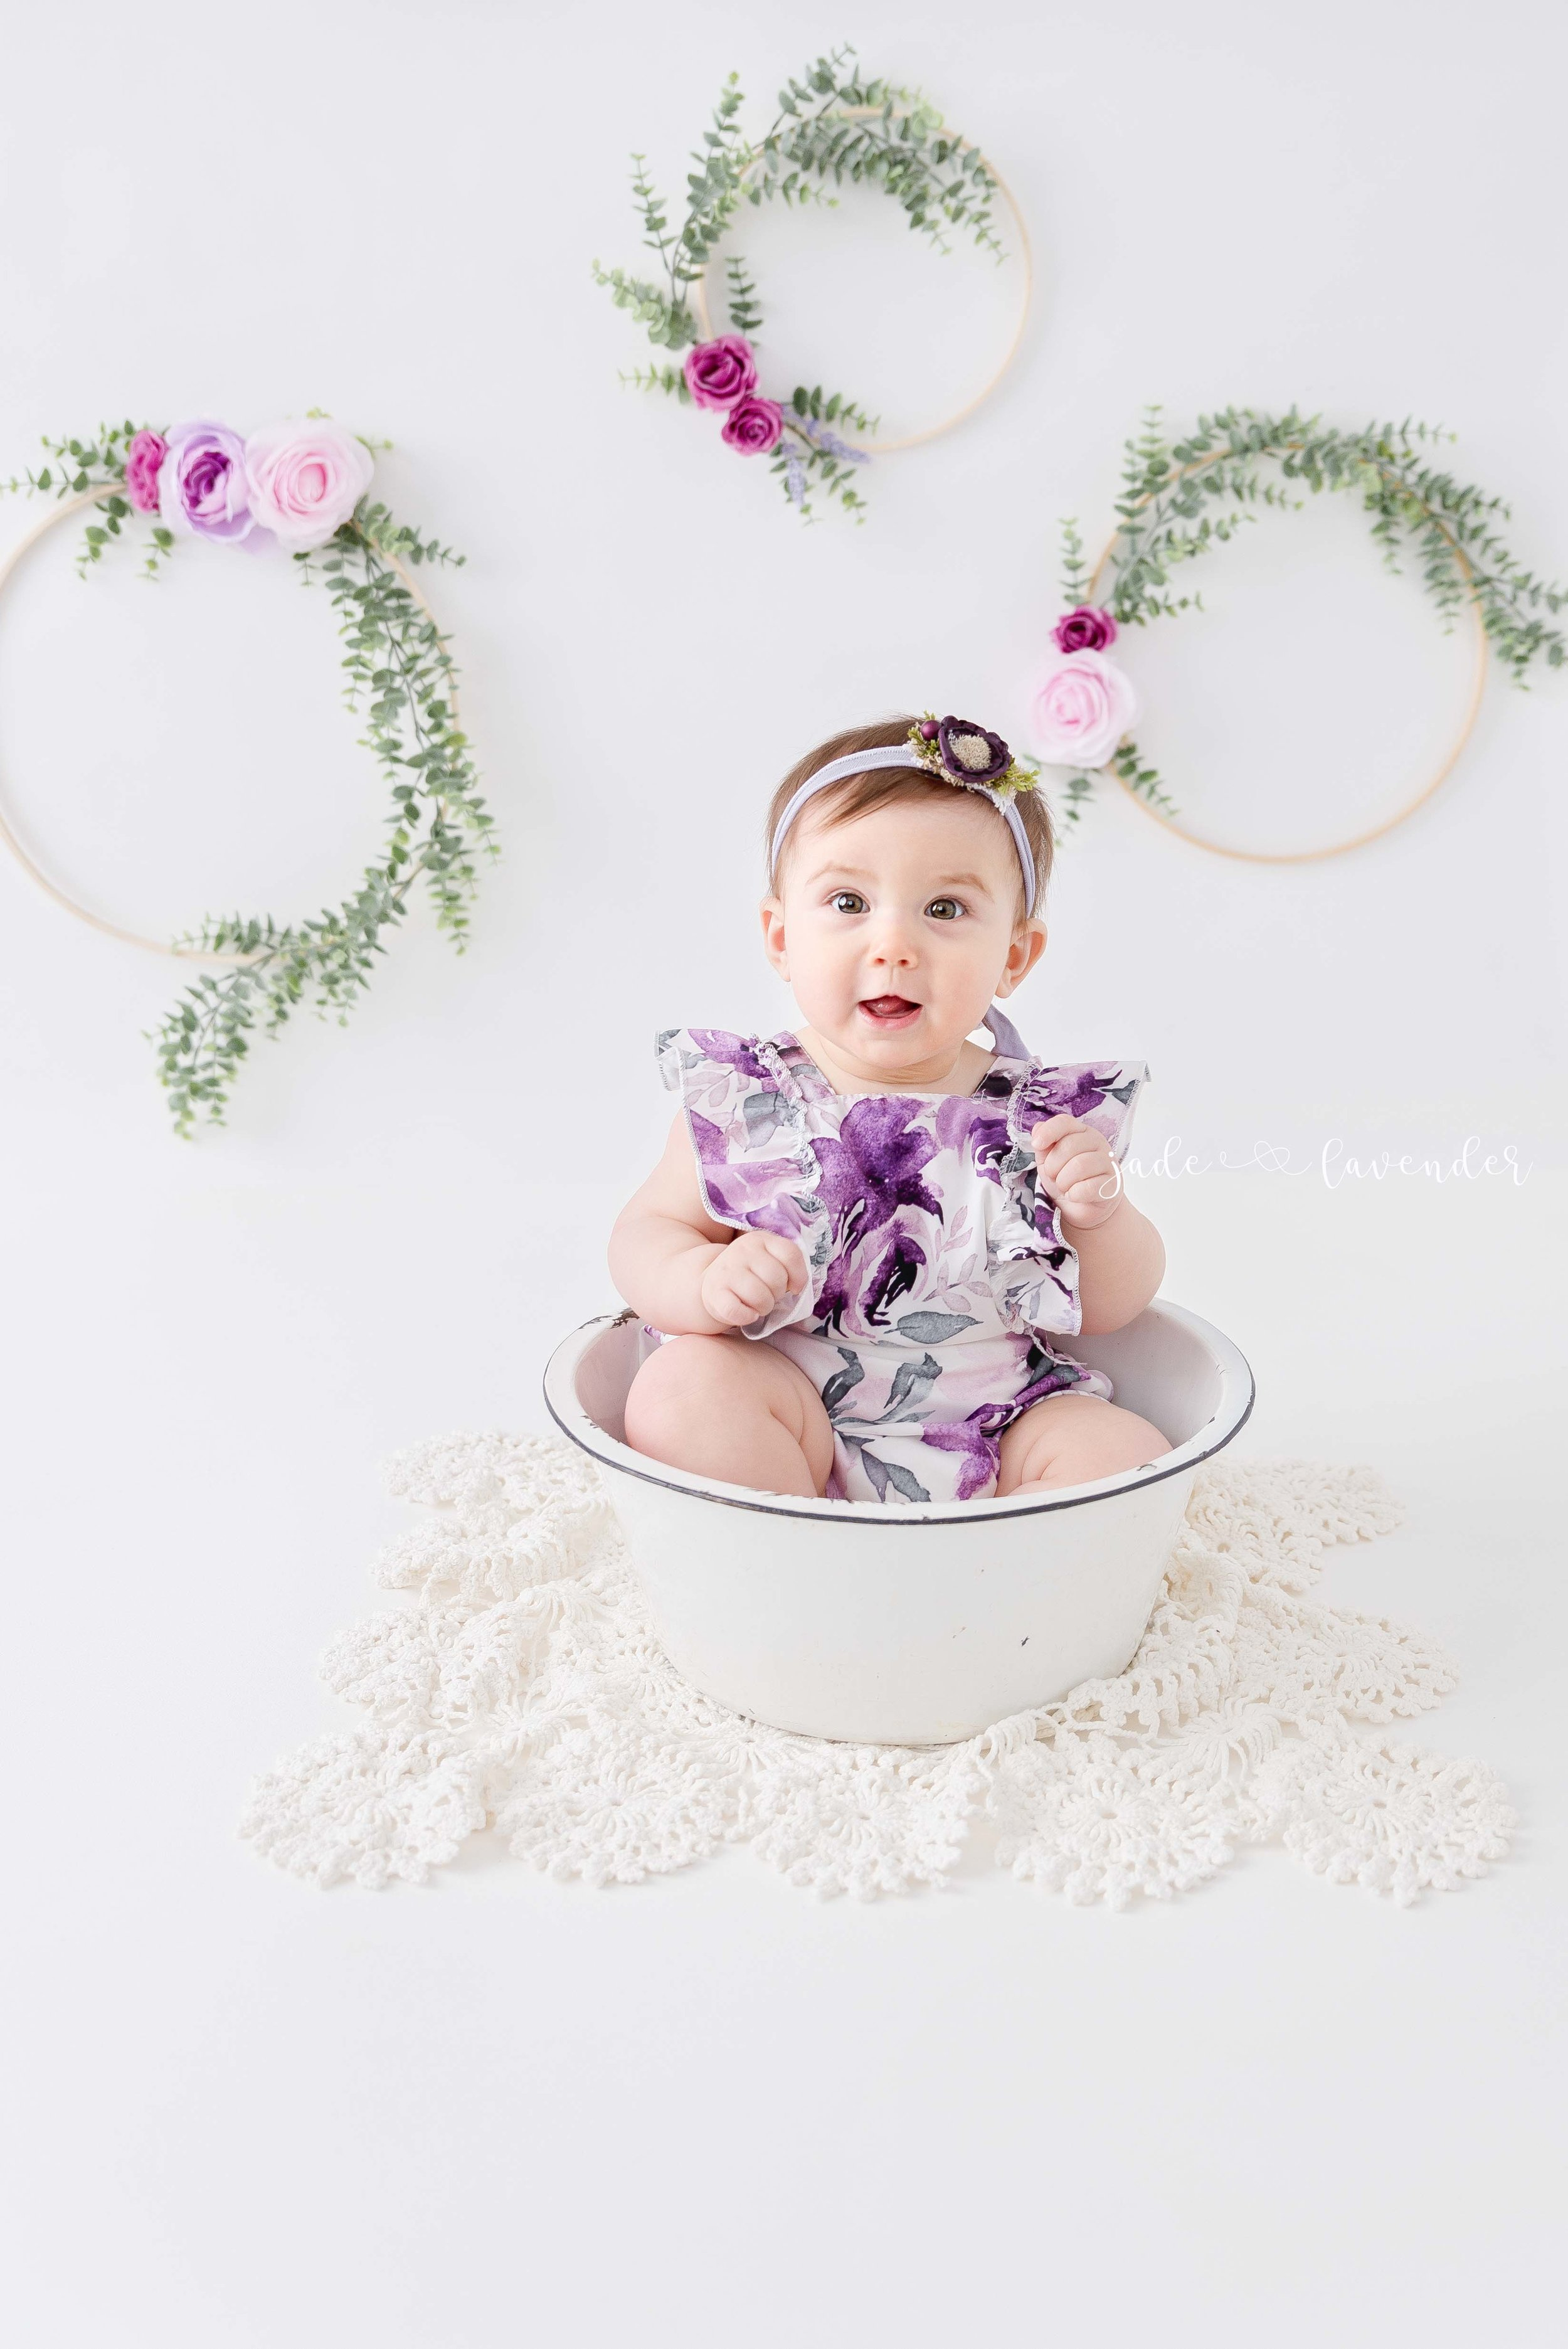 milk-bath-milestone-session-baby-photos-infant-images-newborn-photography-spokane-washington.jpg